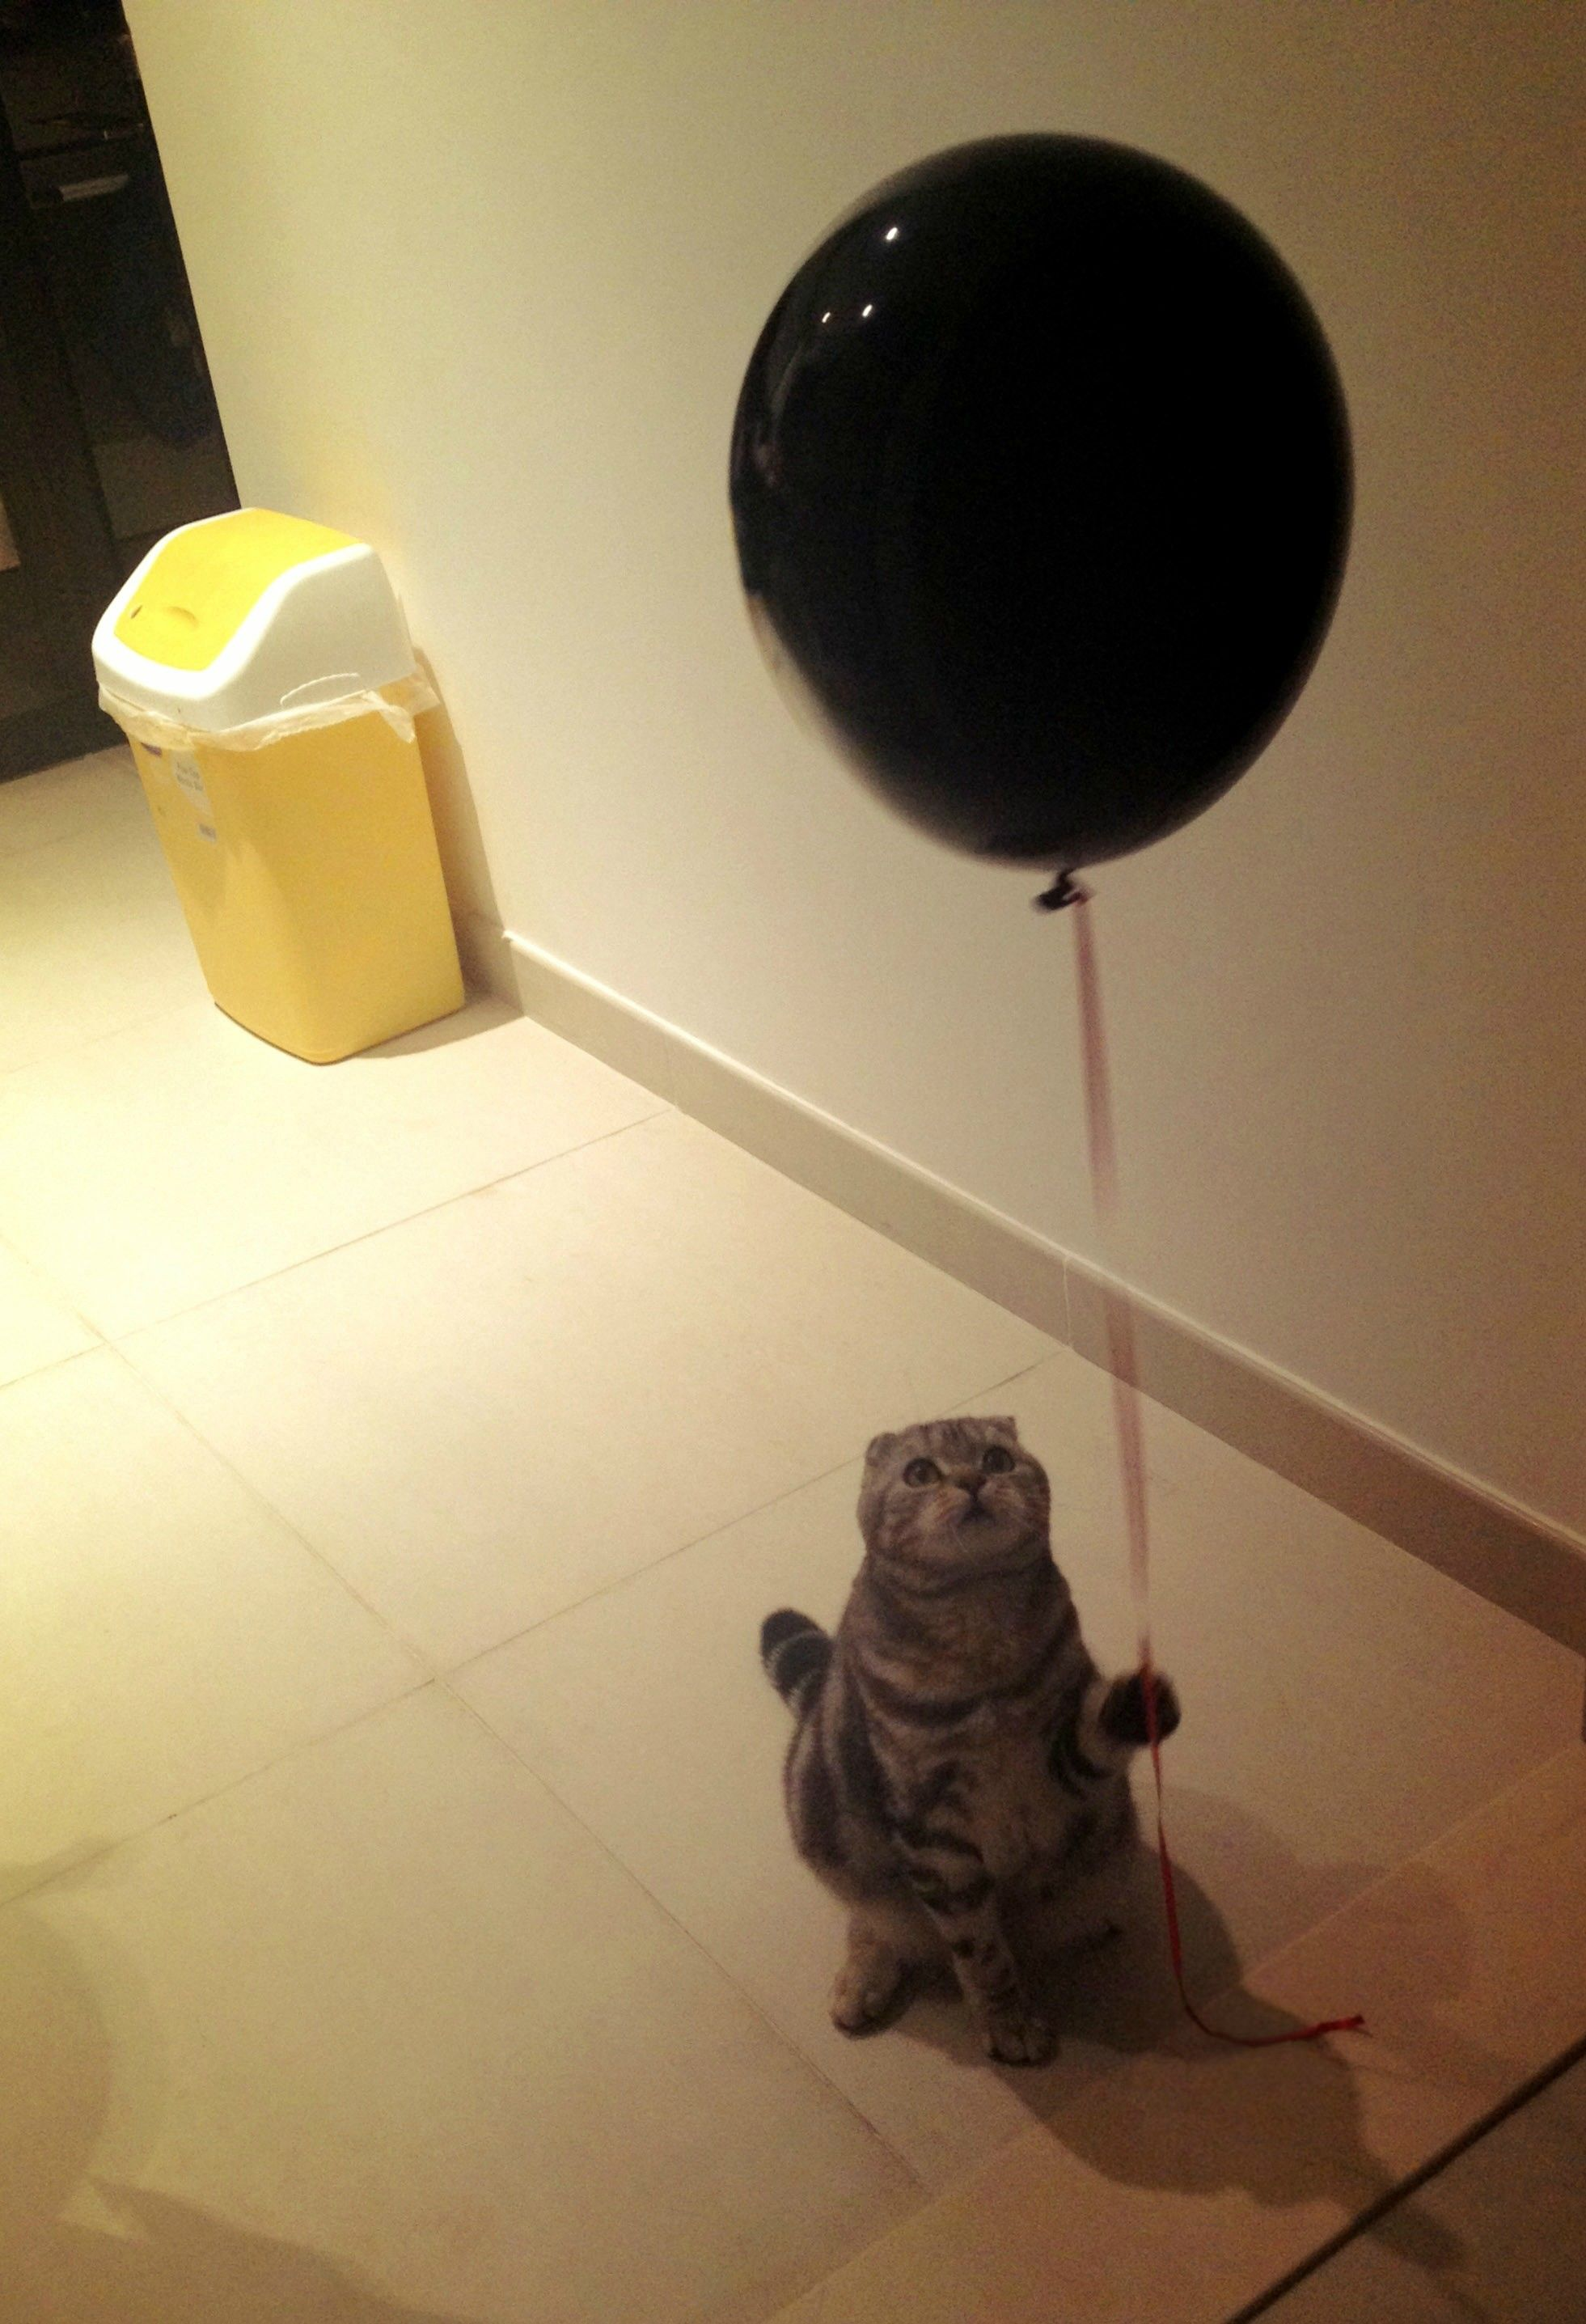 My cat with a balloon